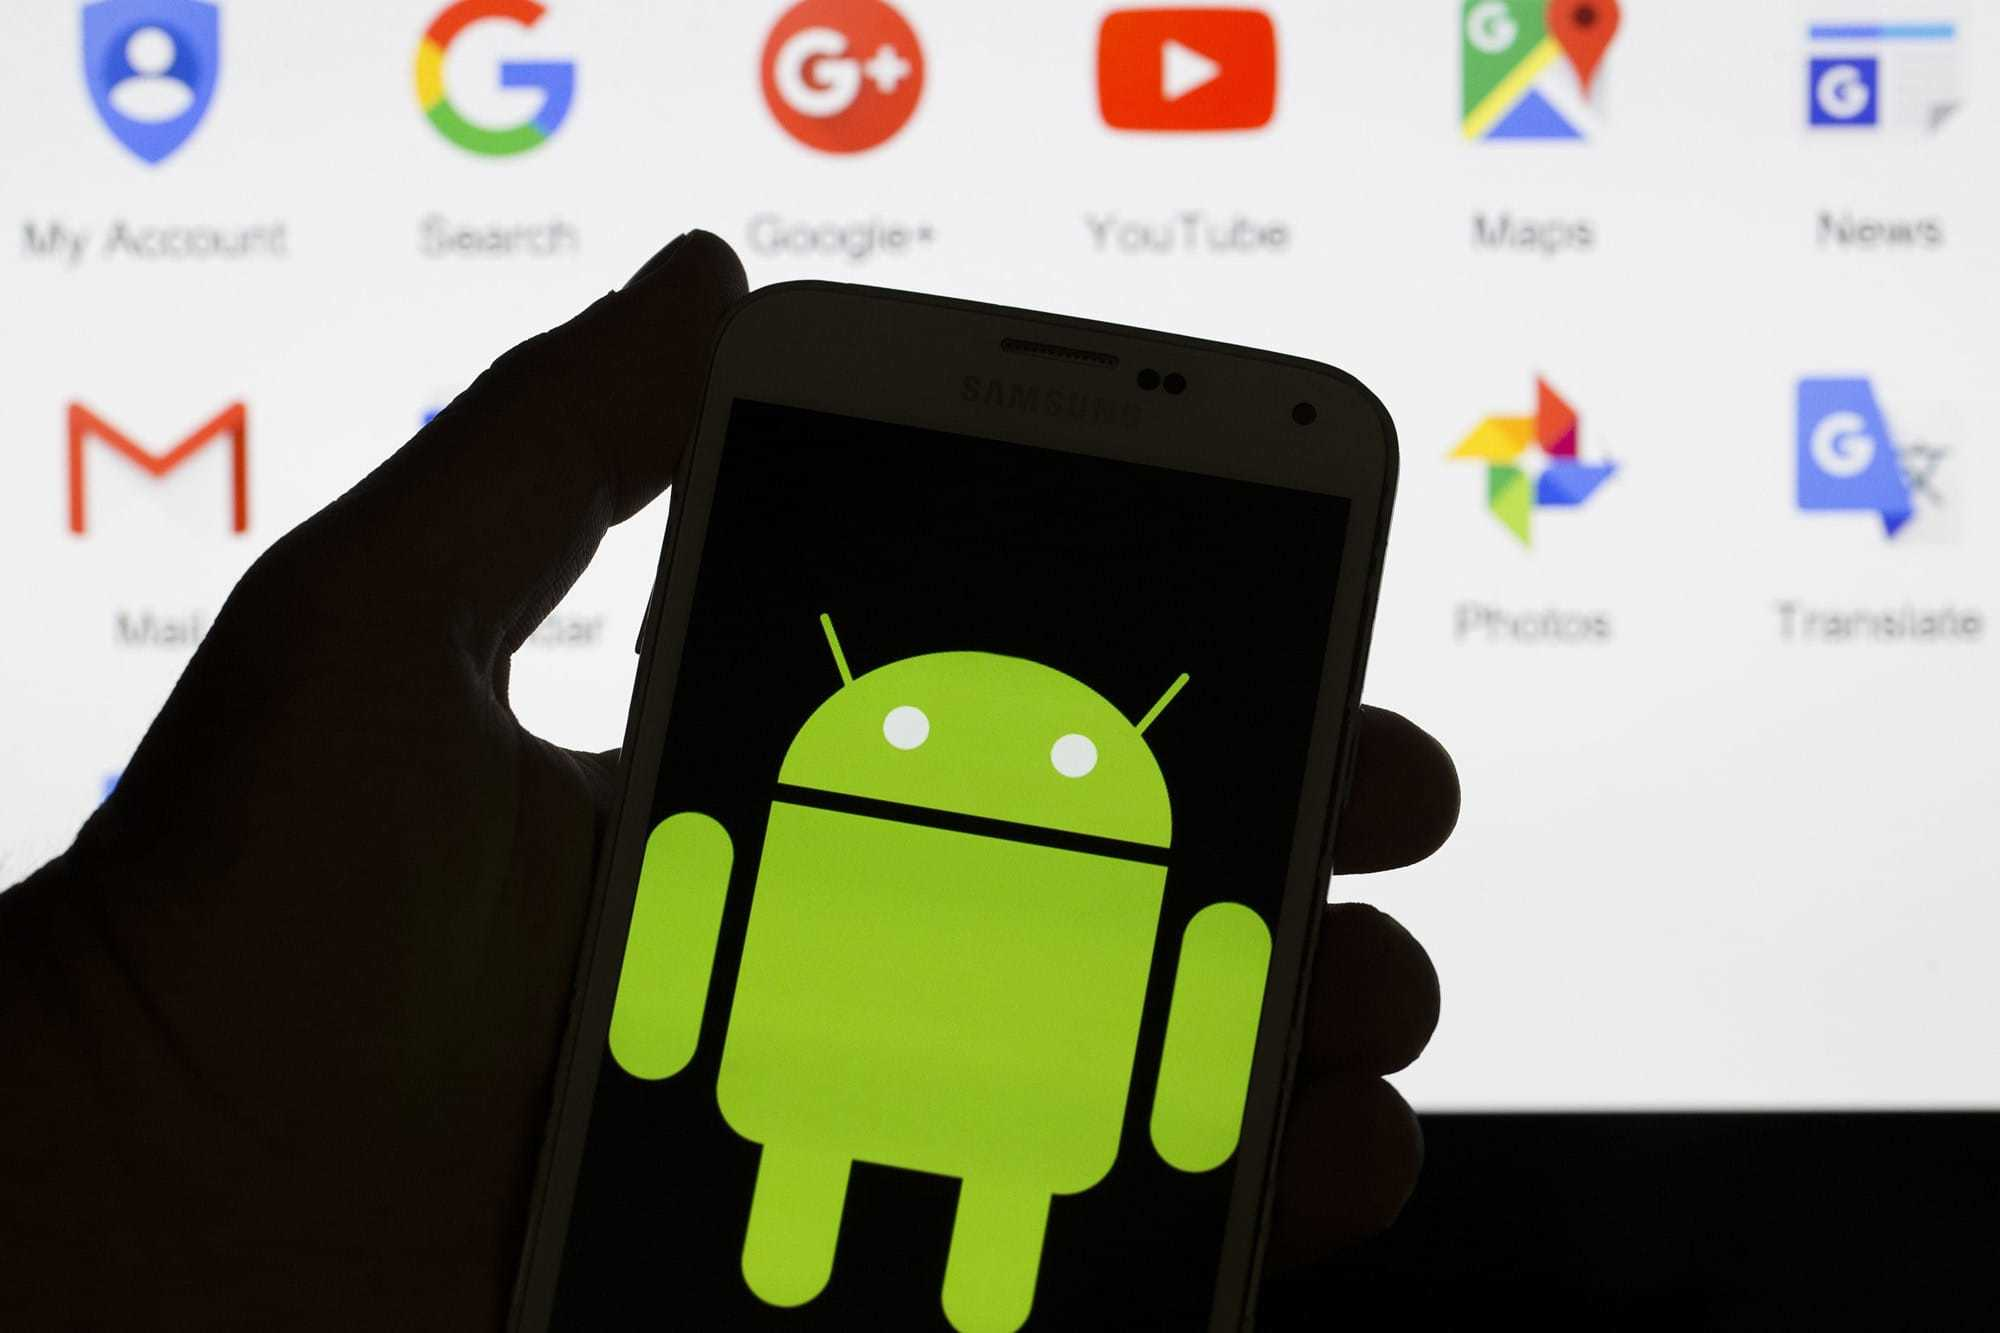 How to update Android on phone